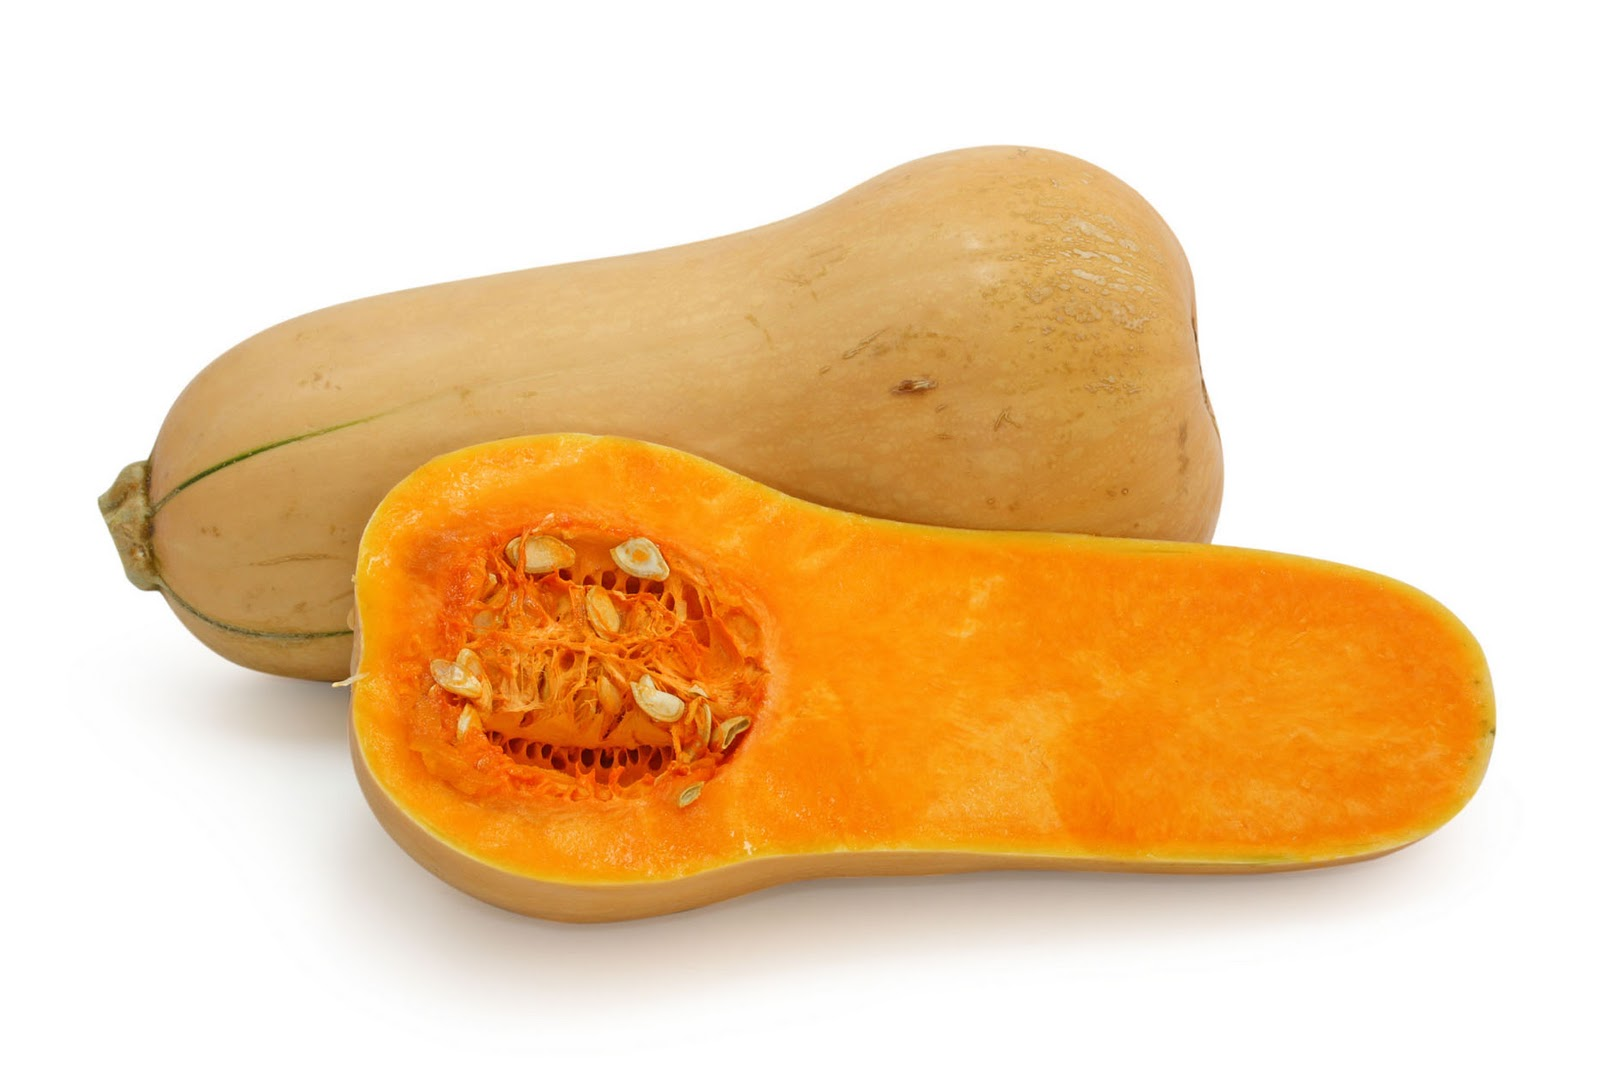 Waltham Butternut Squash Seeds (Winter Type) - 1/2 Tbsp - Bulk